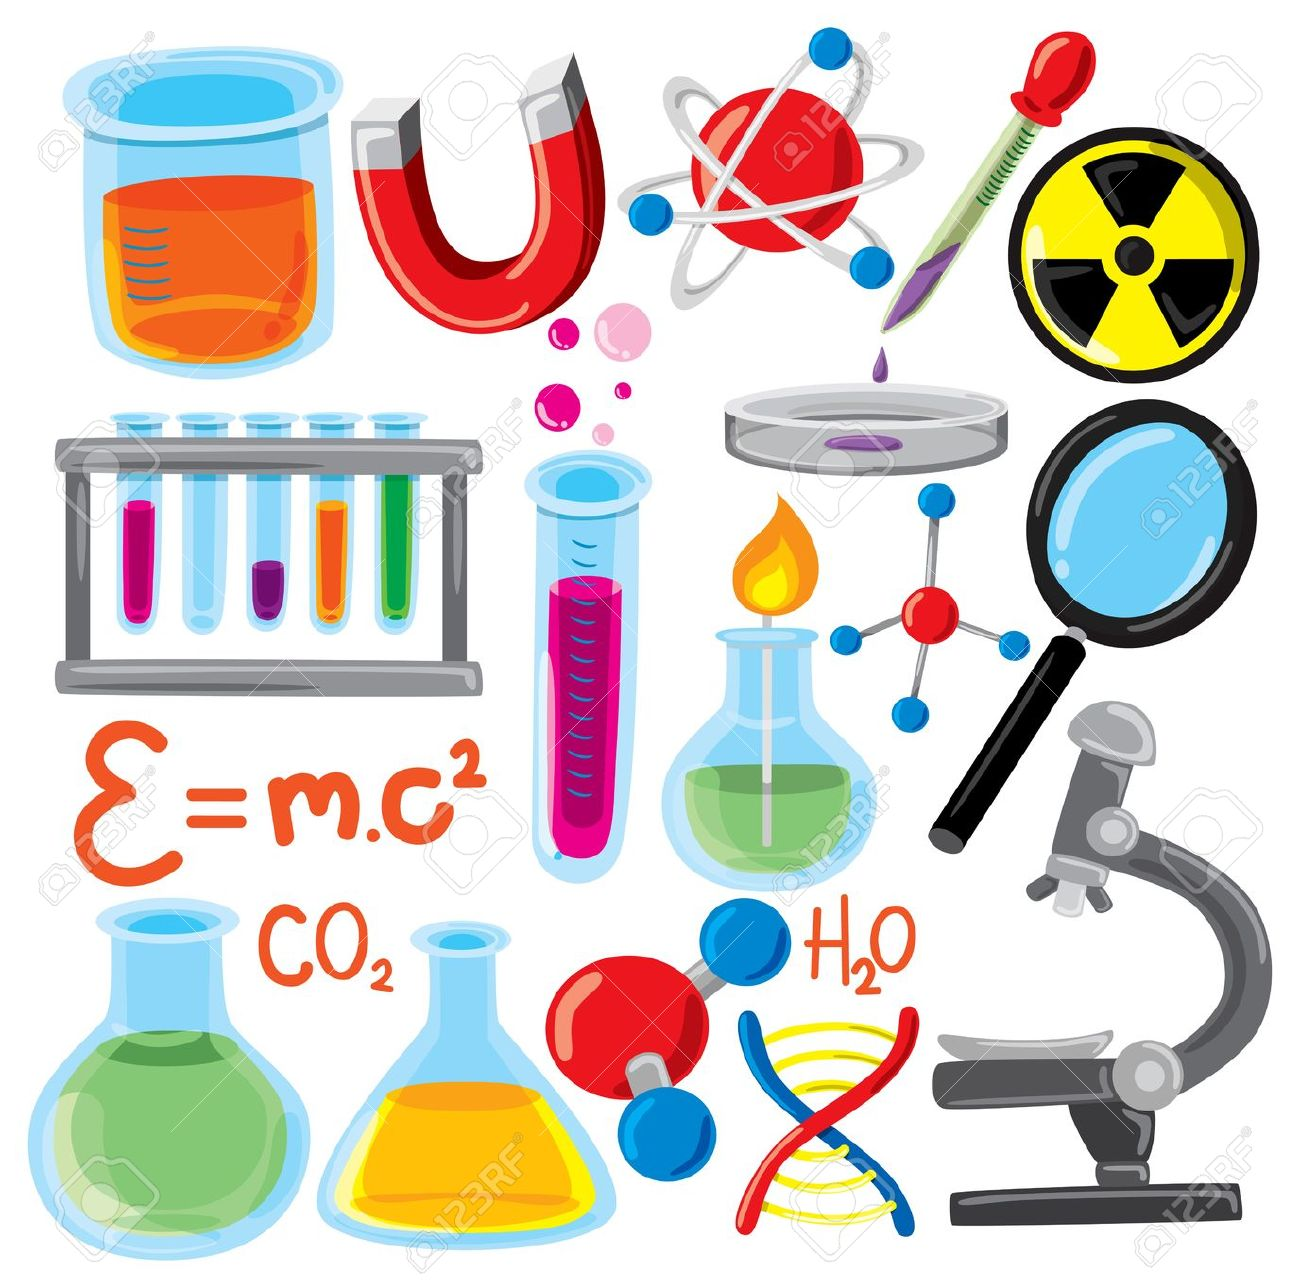 Laboratory clipart scientific instrument Blog History Scientists in Famous